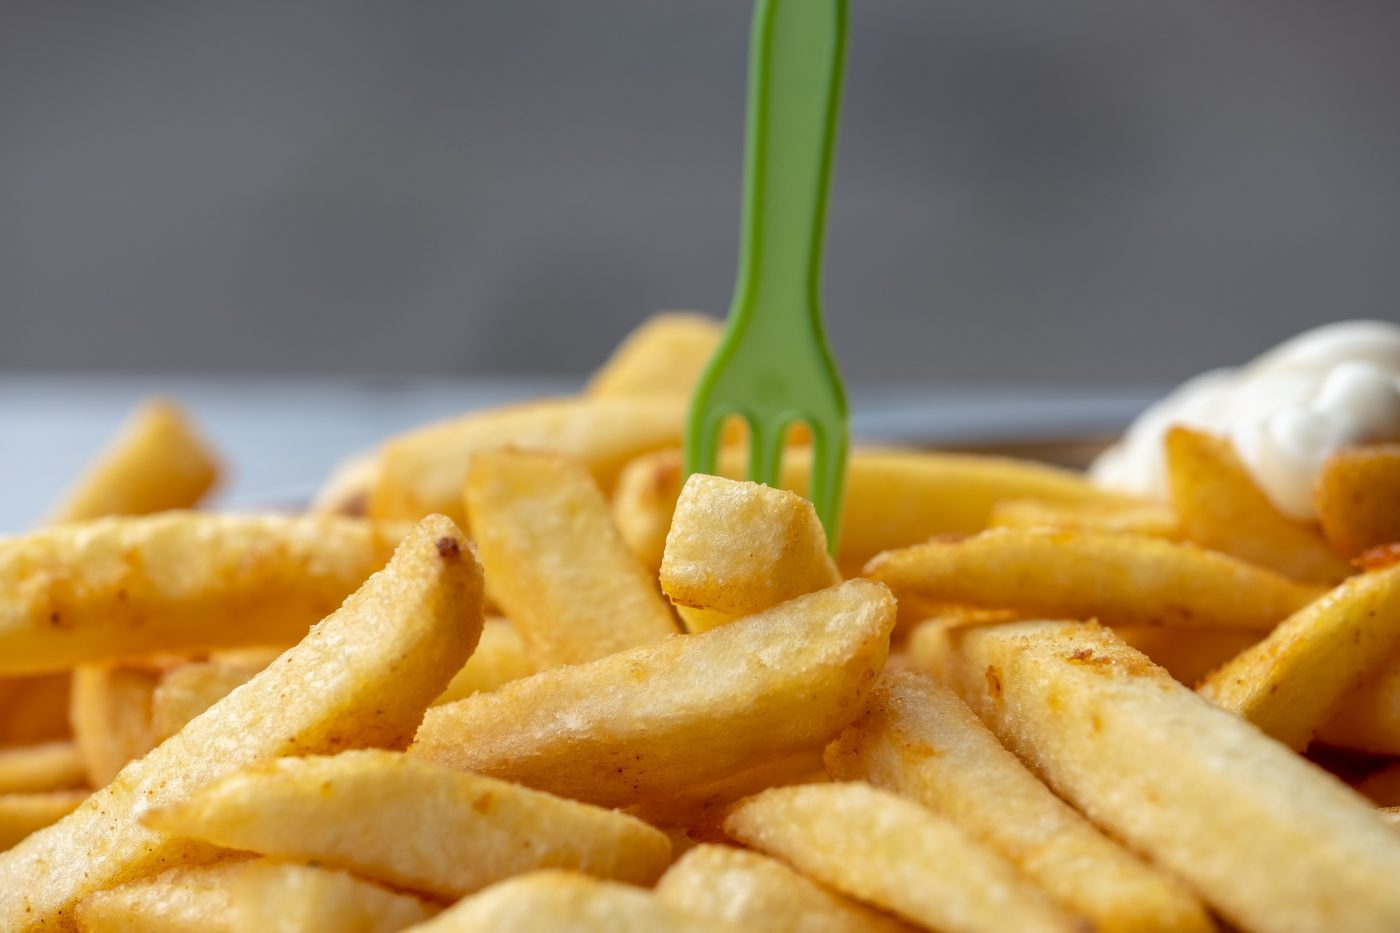 Oh so many fries - Ramzan: Foodin' During the Day